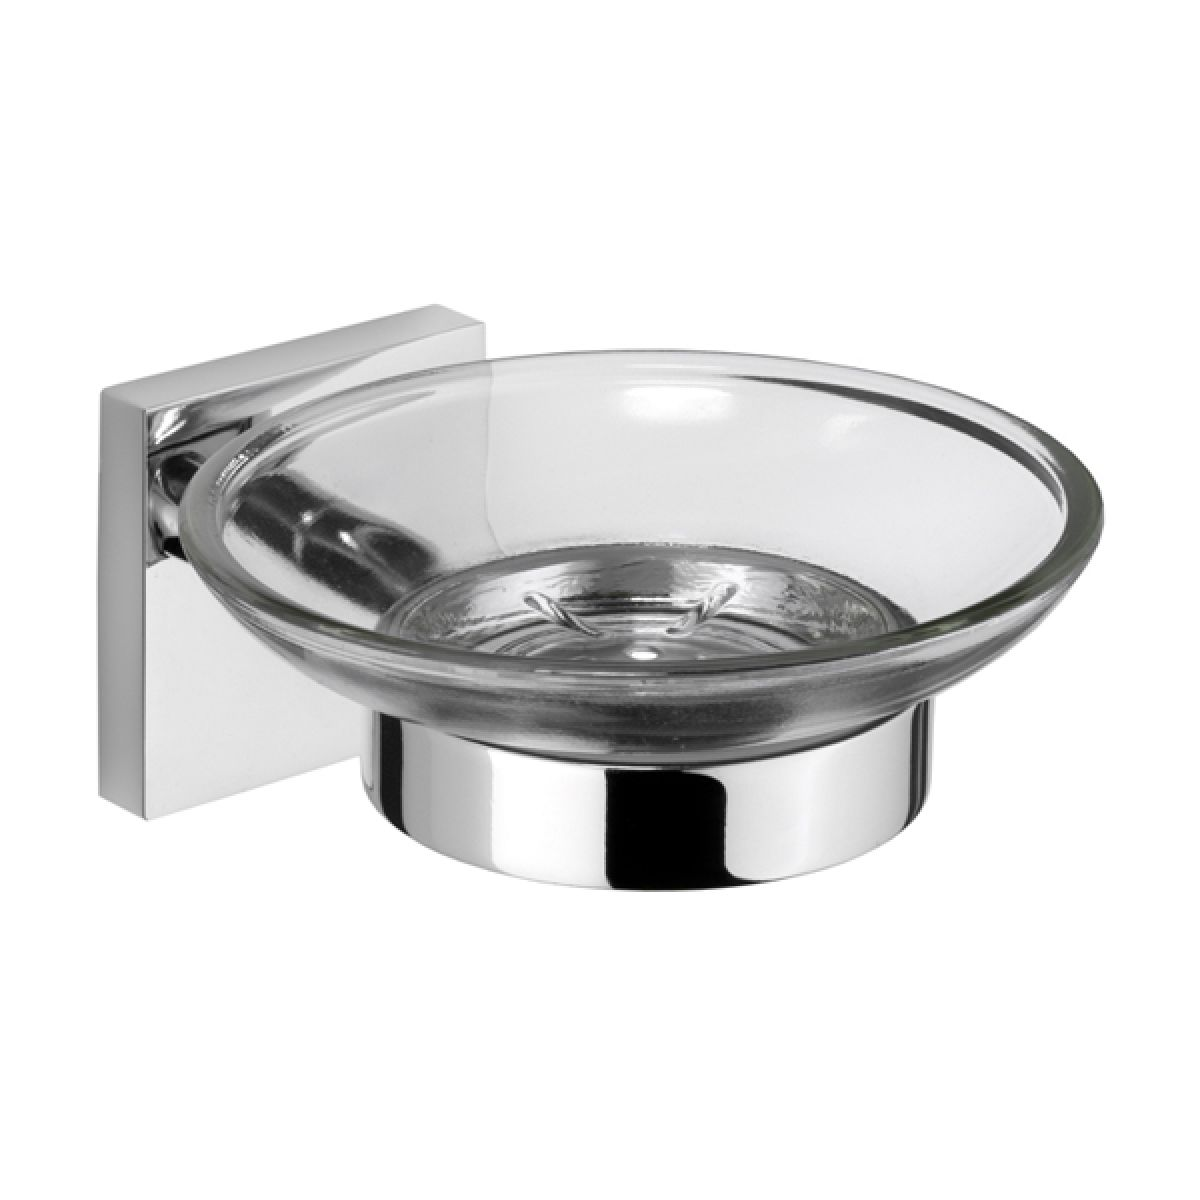 Croydex Chester Soap Dish and Holder